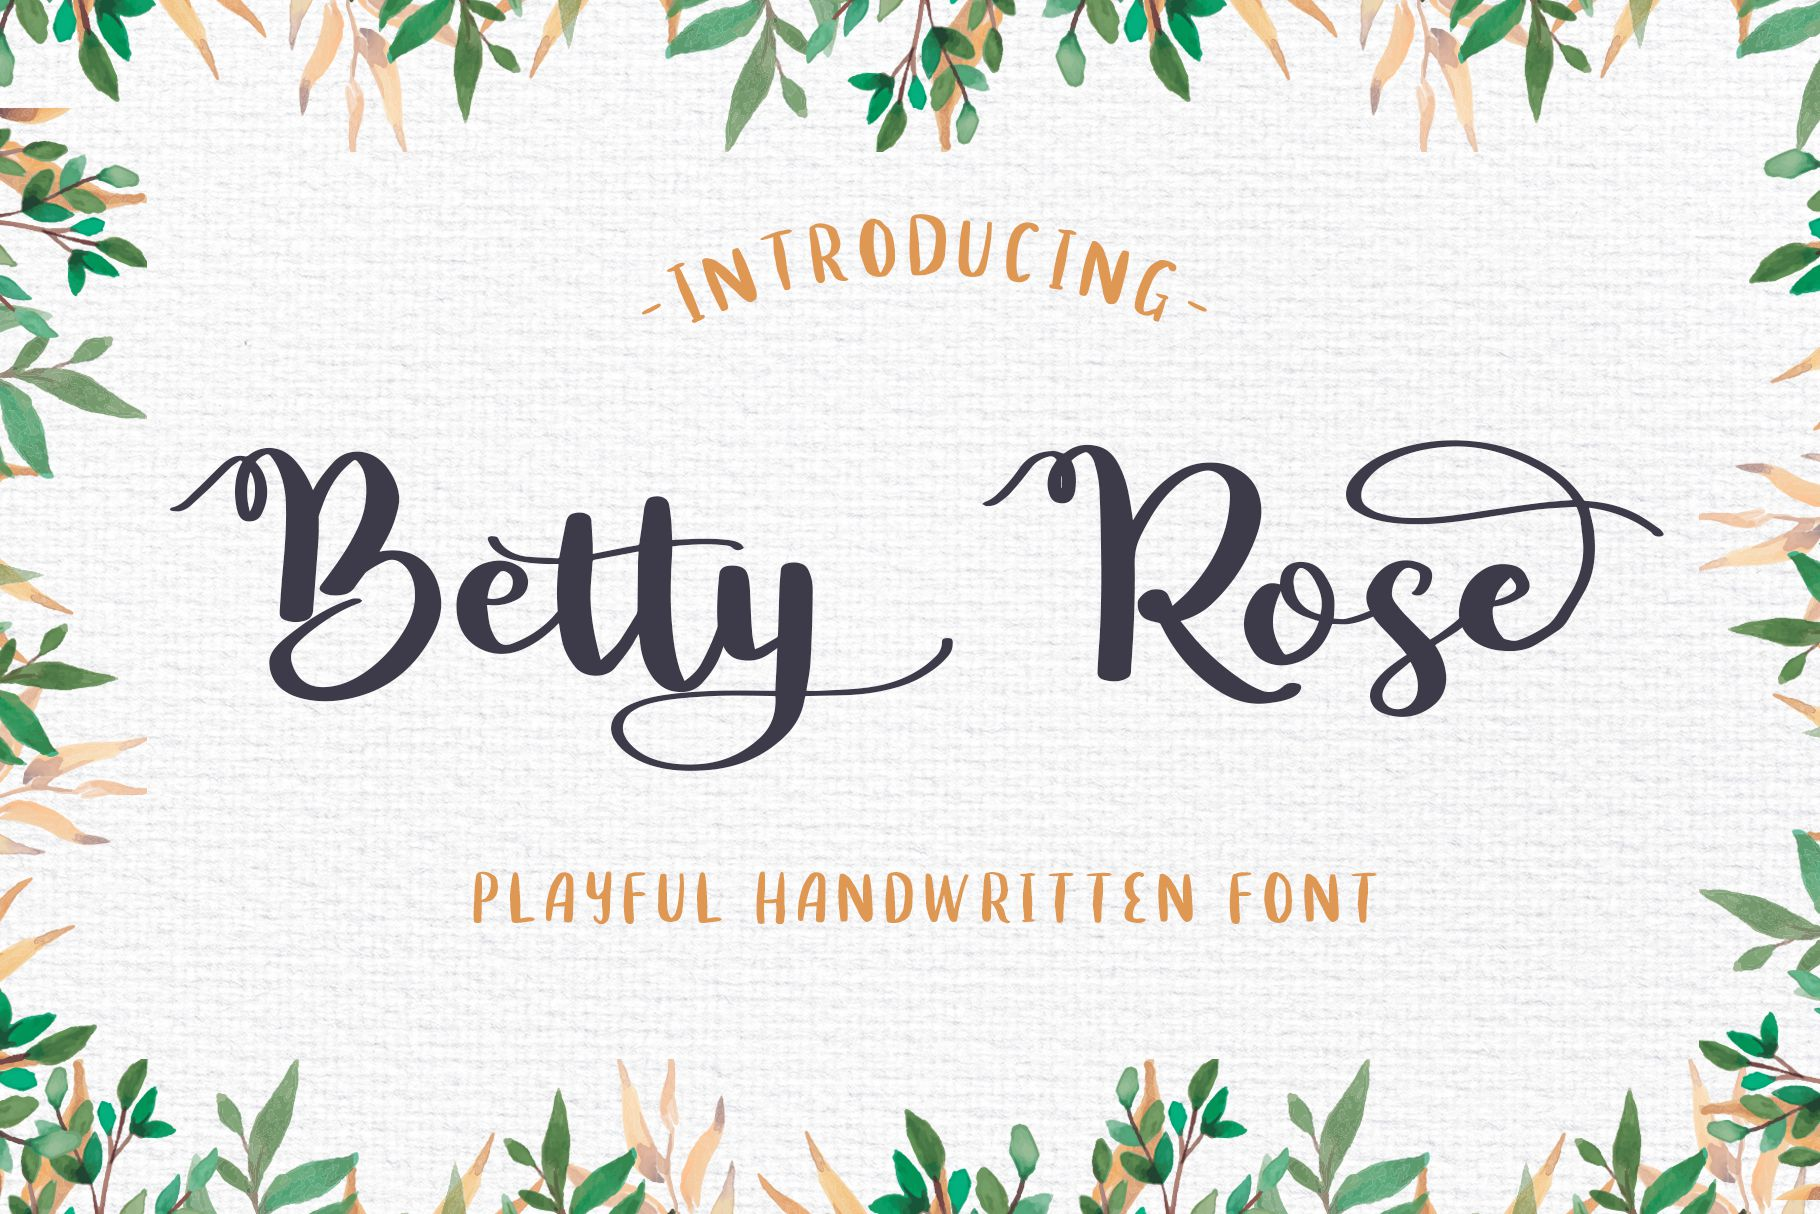 Download Betty Rose - Handwritten Font (185189) | Script | Font Bundles